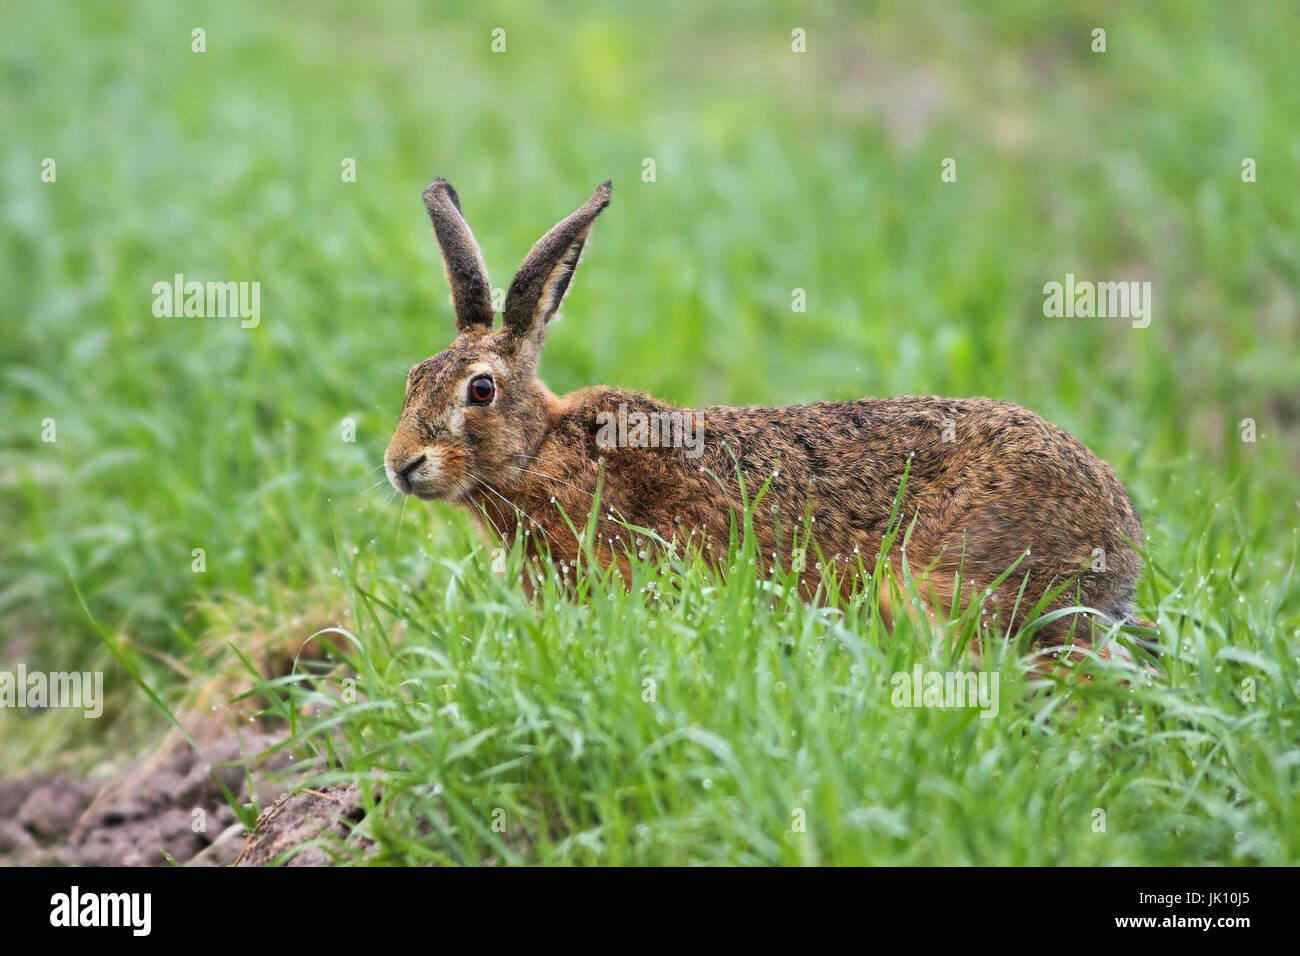 Hare in the field with the feed search, Hase im Feld bei der Futtersuche - Stock Image